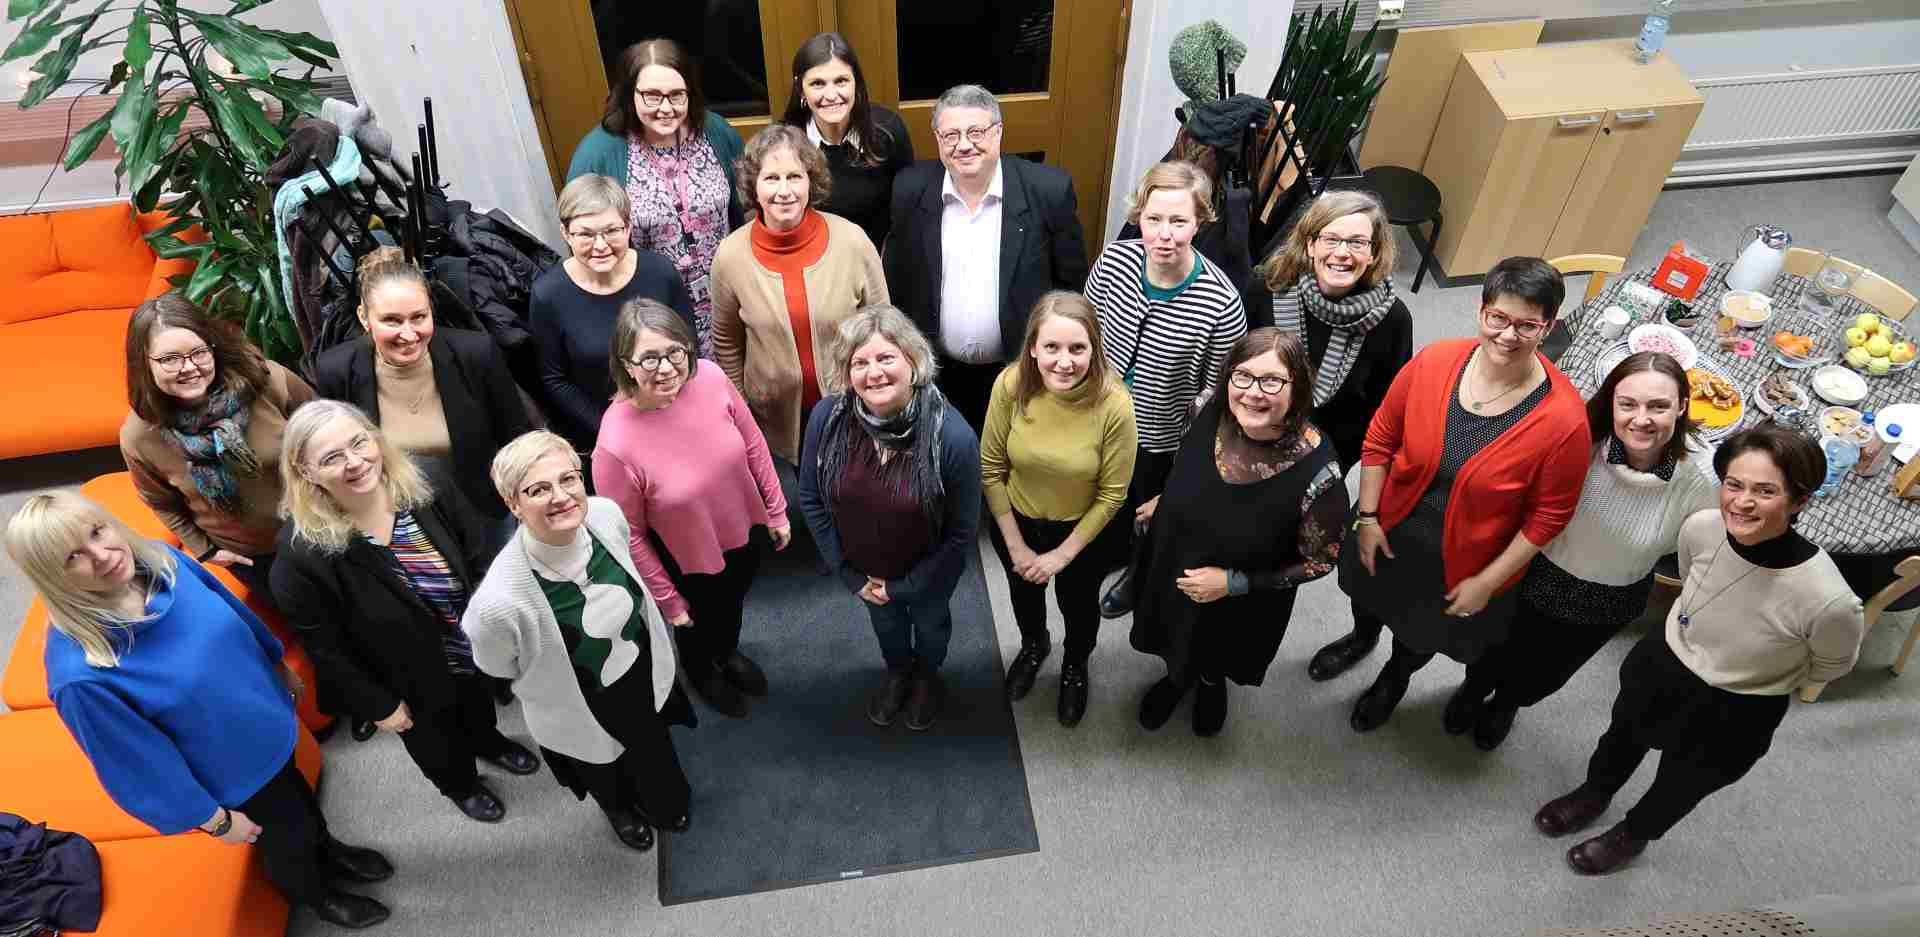 Group photo of the MOI kick-off meeting in Helsinki January 2019